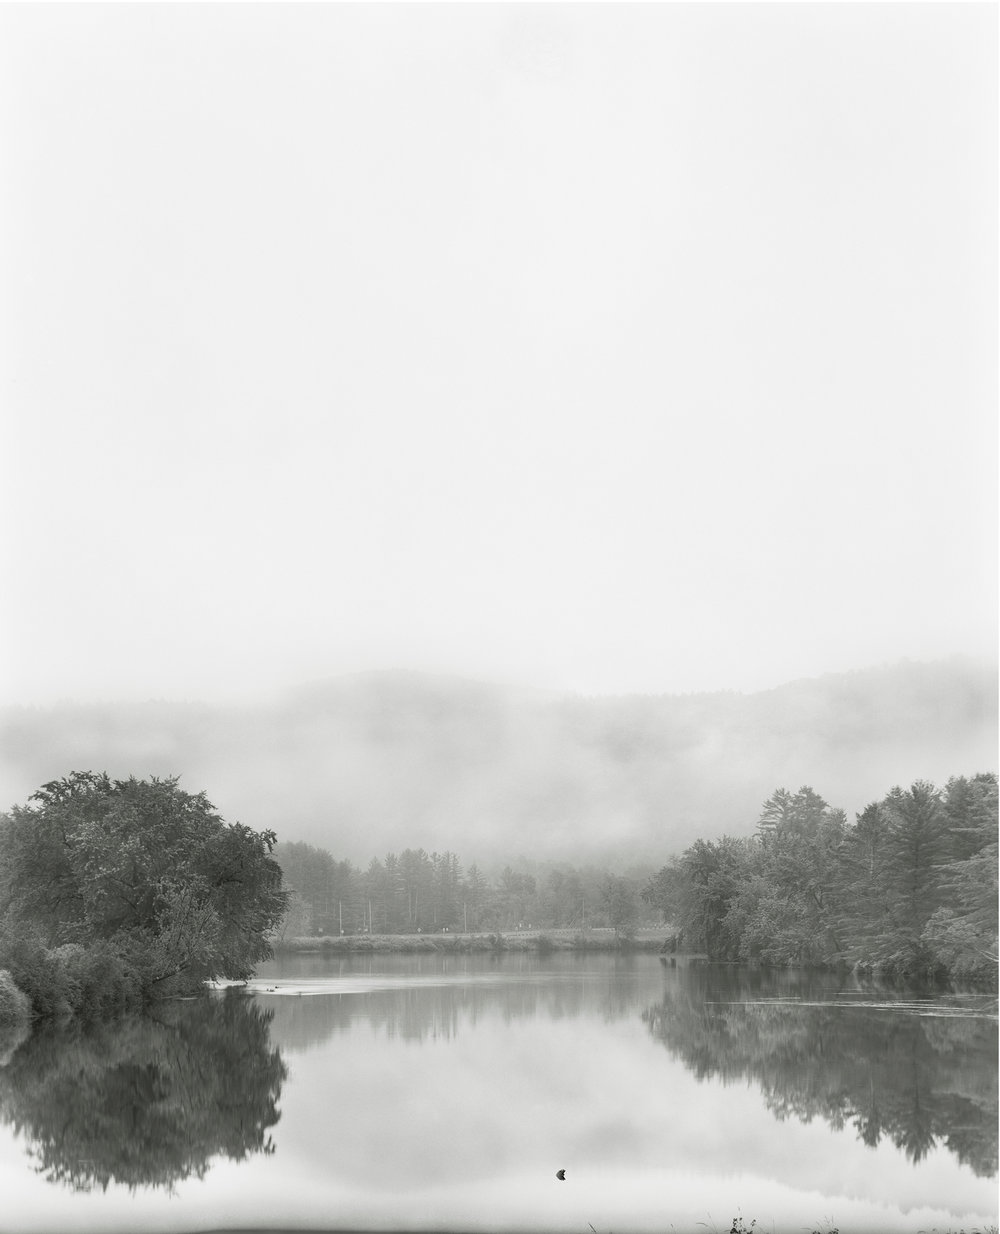 Elvira_Piedra_The Great River, Vermont.jpg